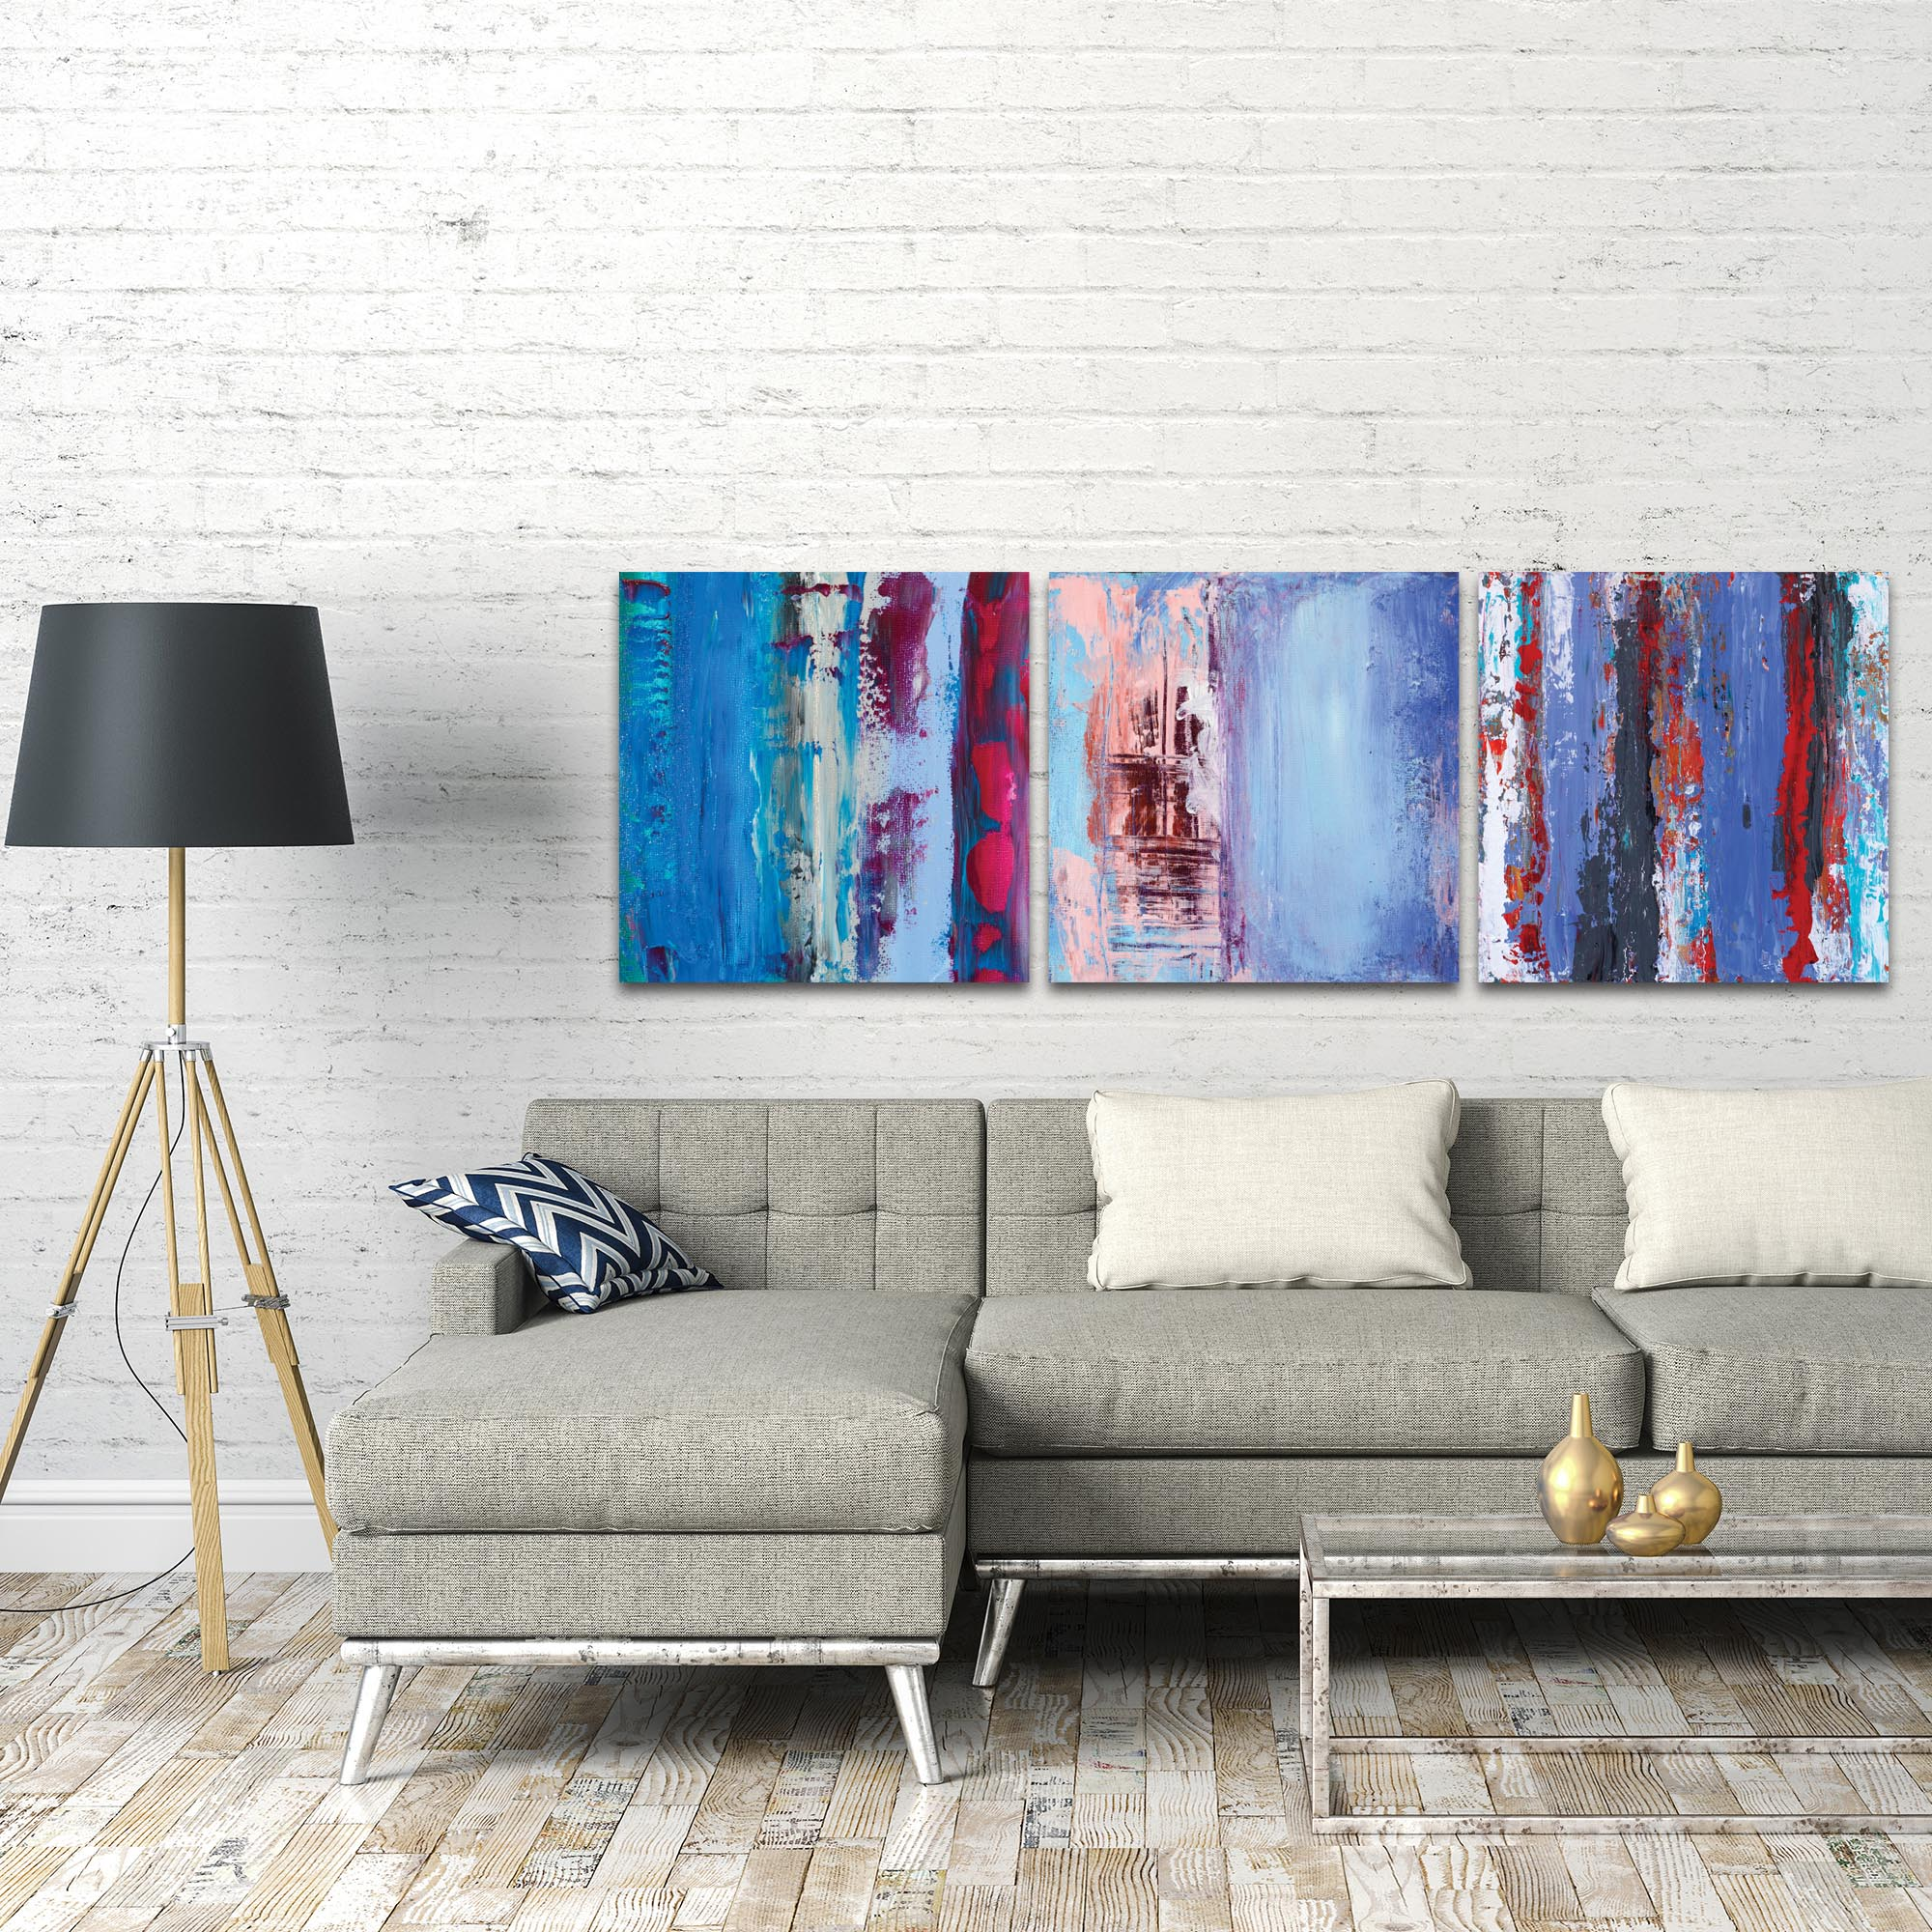 Abstract Wall Art 'Urban Triptych 1 Large' - Urban Decor on Metal or Plexiglass - Lifestyle View